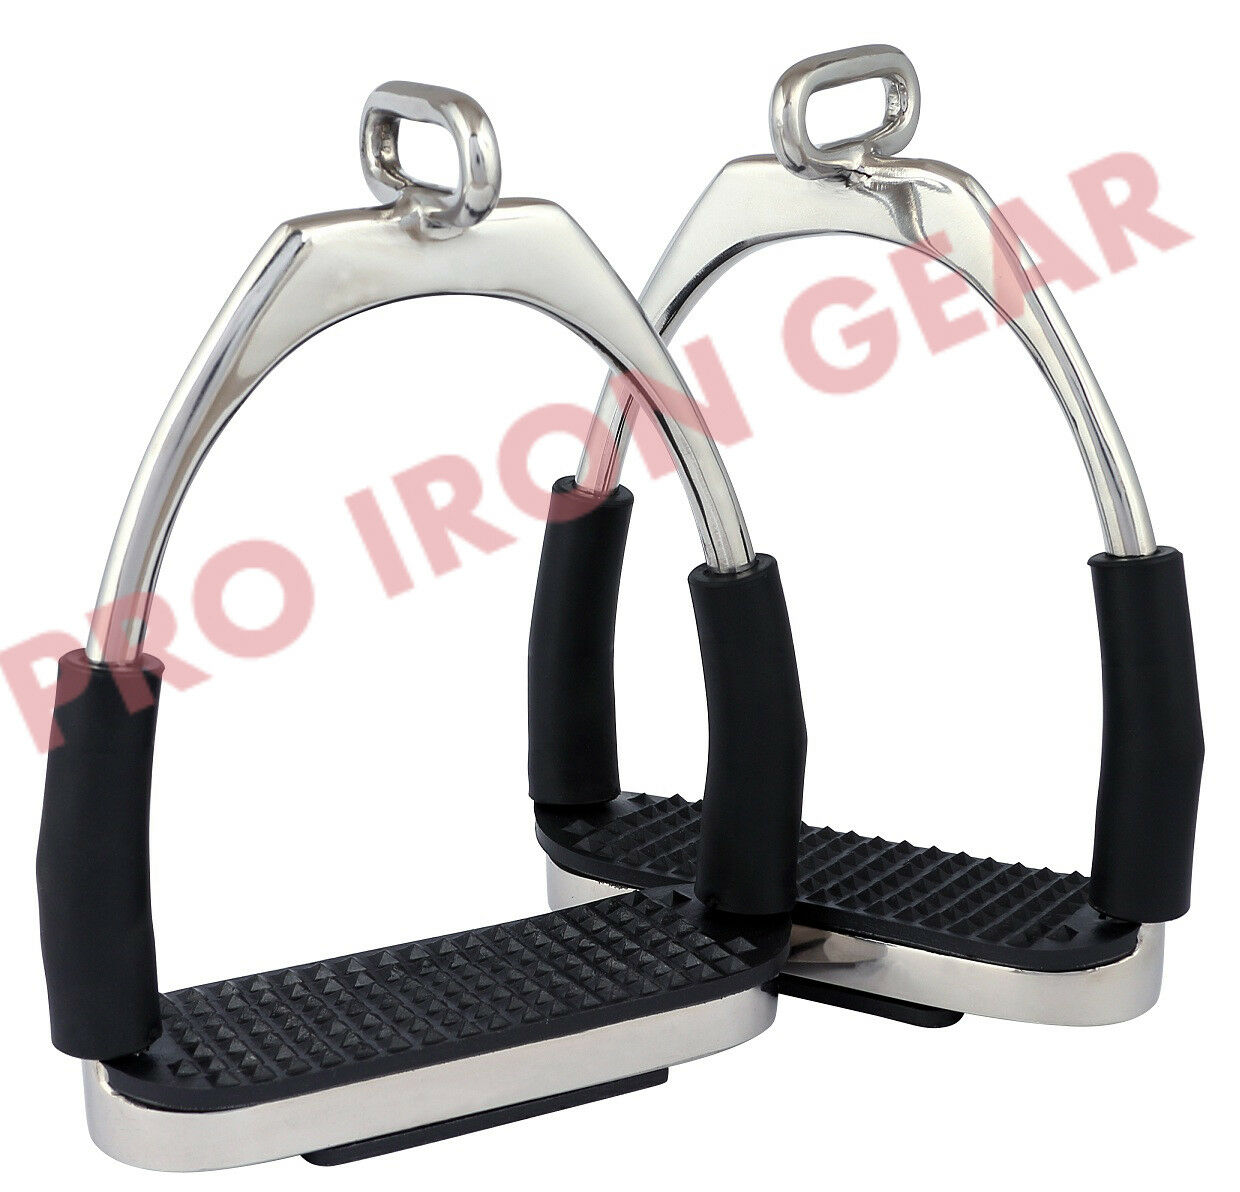 OFFSET  HORSE FLEXIBLE  SAFETY STIRRUPS (4.75'')  RIDING BENDY IRON STEEL  floor price